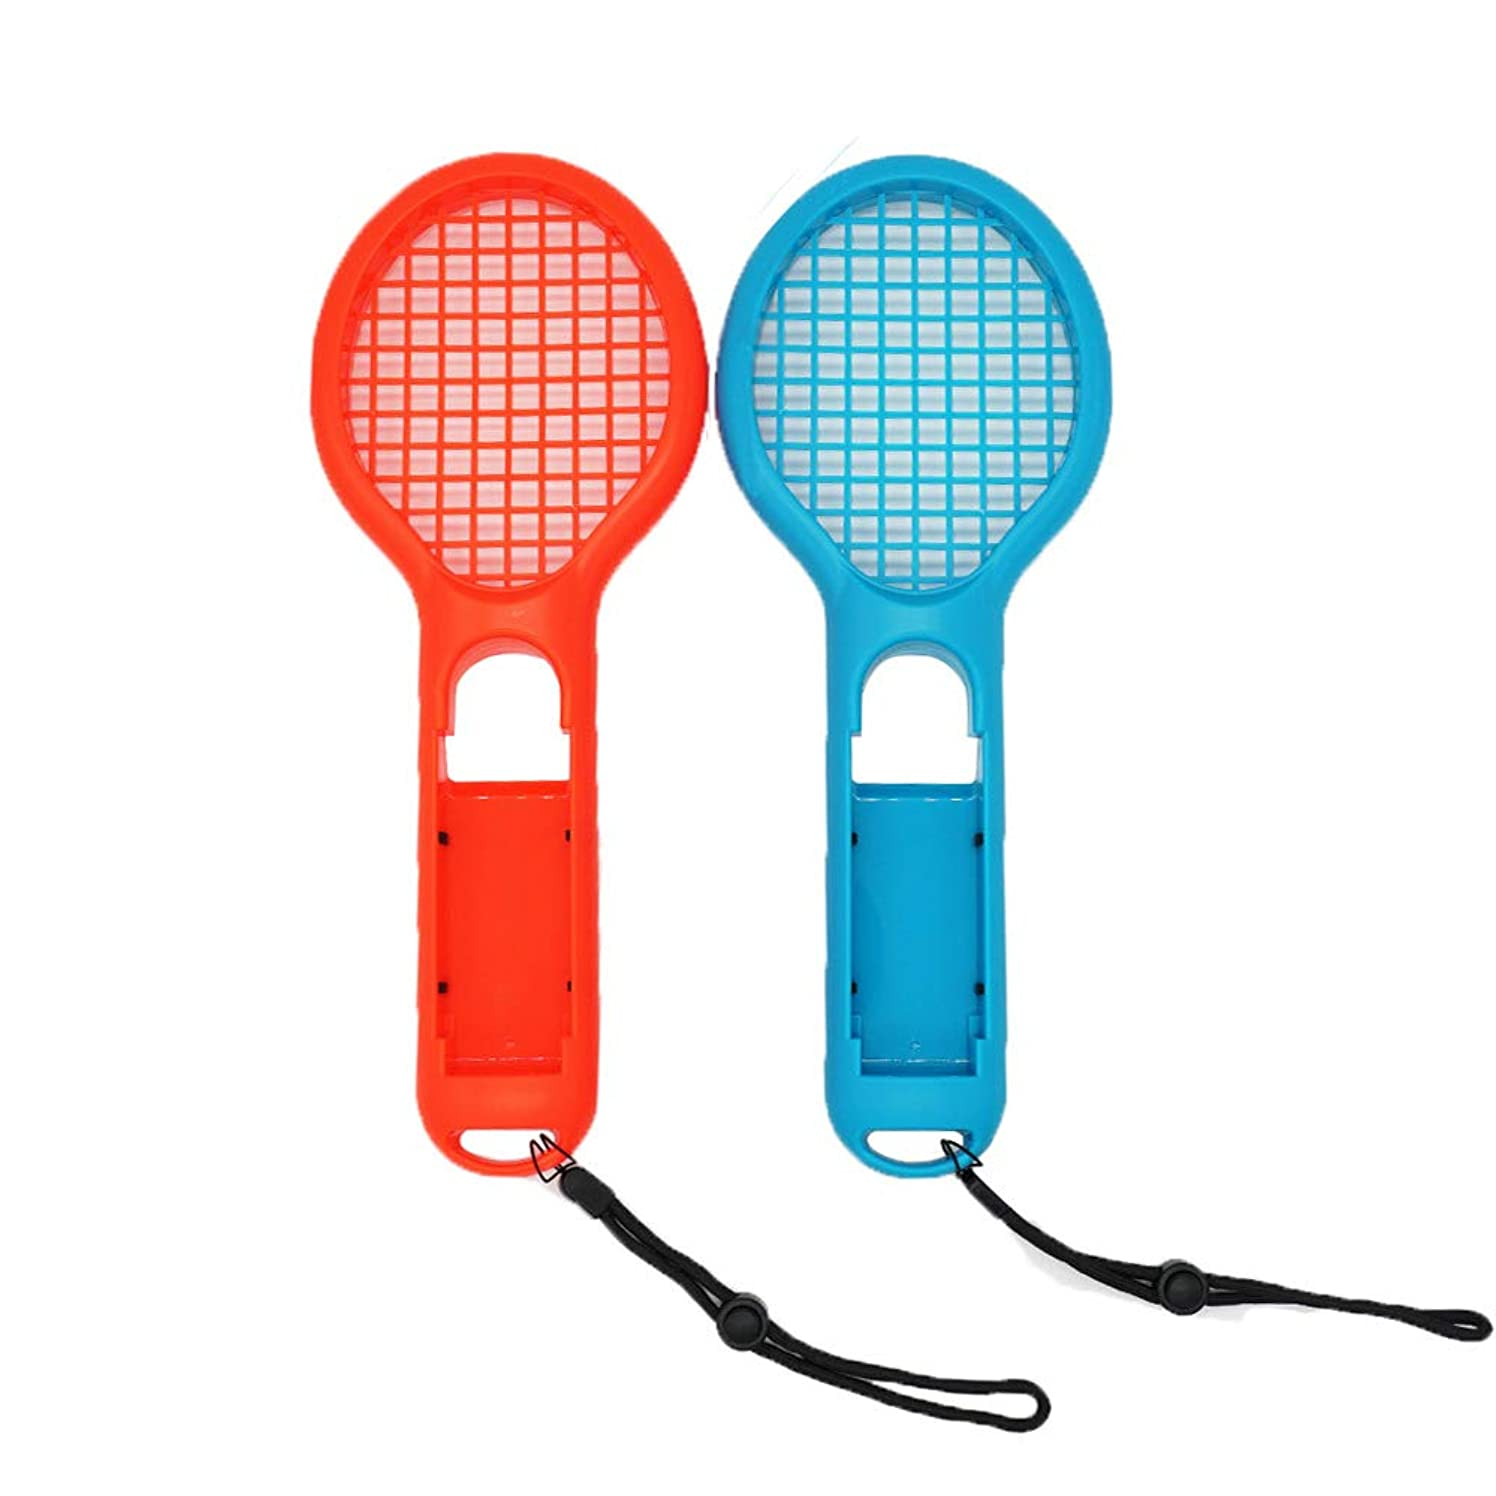 WINGONEER? Tennis Racket for Nintendo Switch Joy-Con Controller Twin Pack Tennis Racket for Nintendo Switch Game Mario Tennis Aces